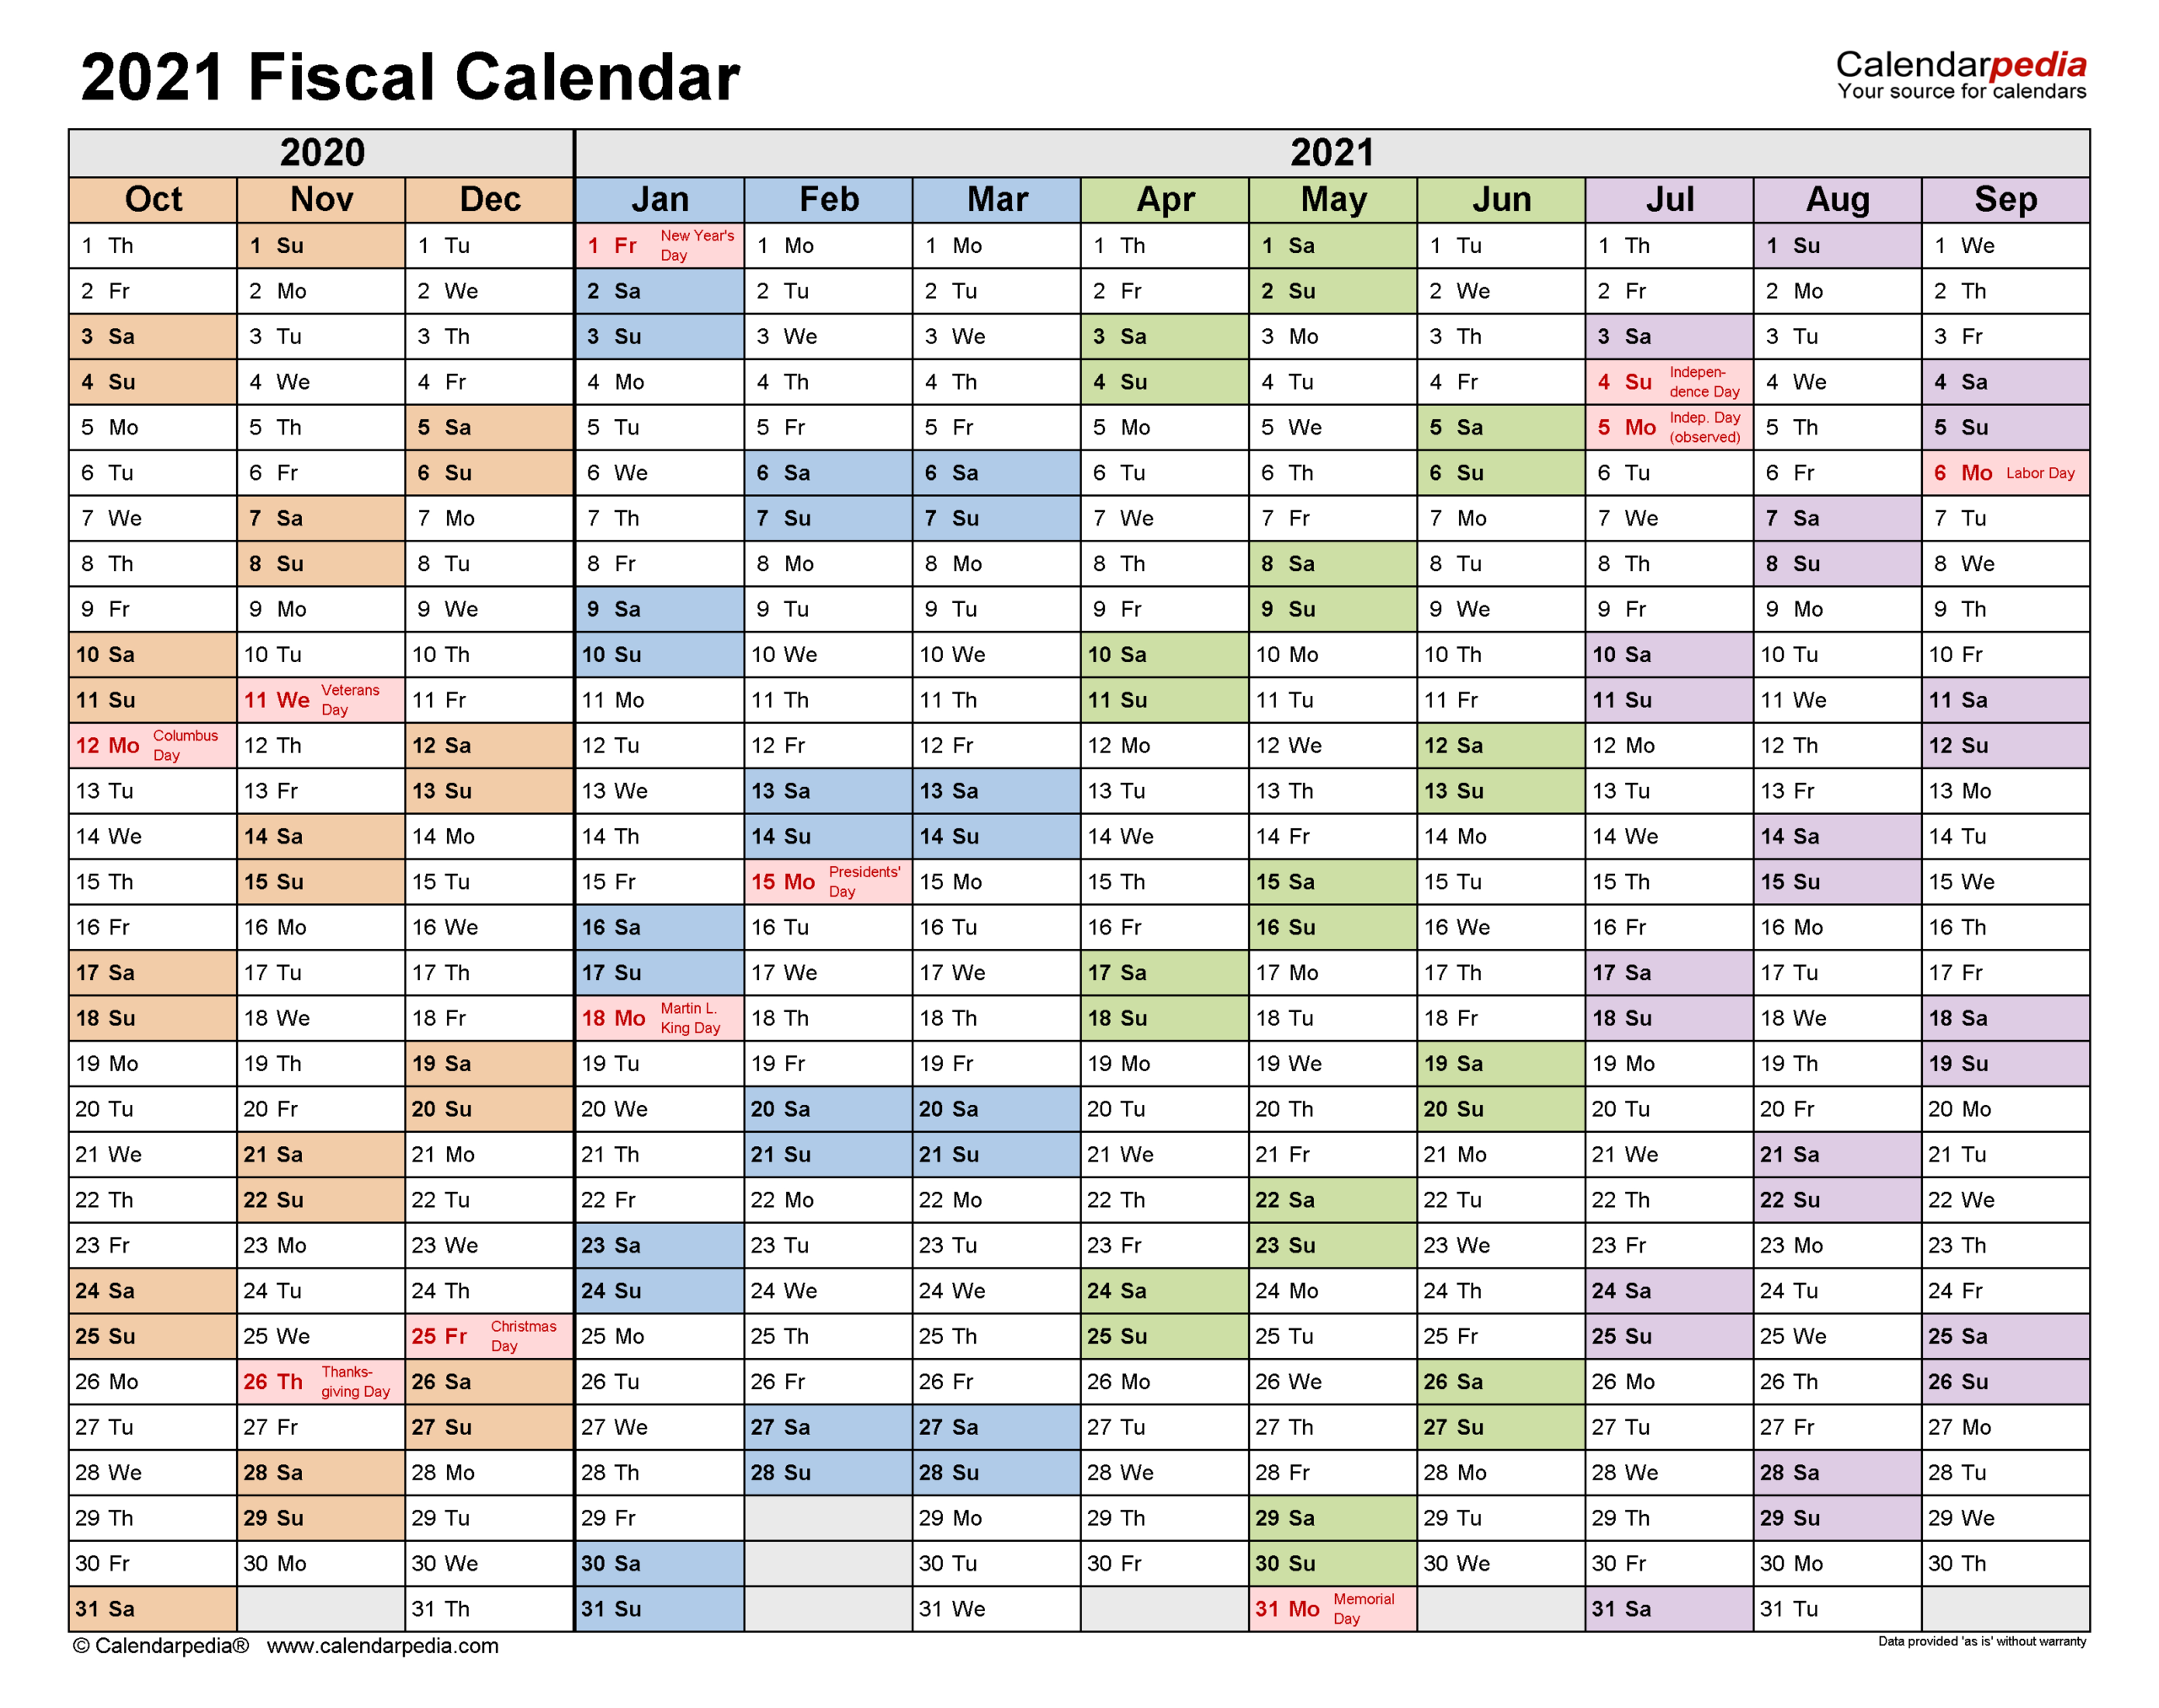 Fiscal Calendars 2021 - Free Printable Excel Templates inside 2021-2021 Two Year Planner: 2 Year